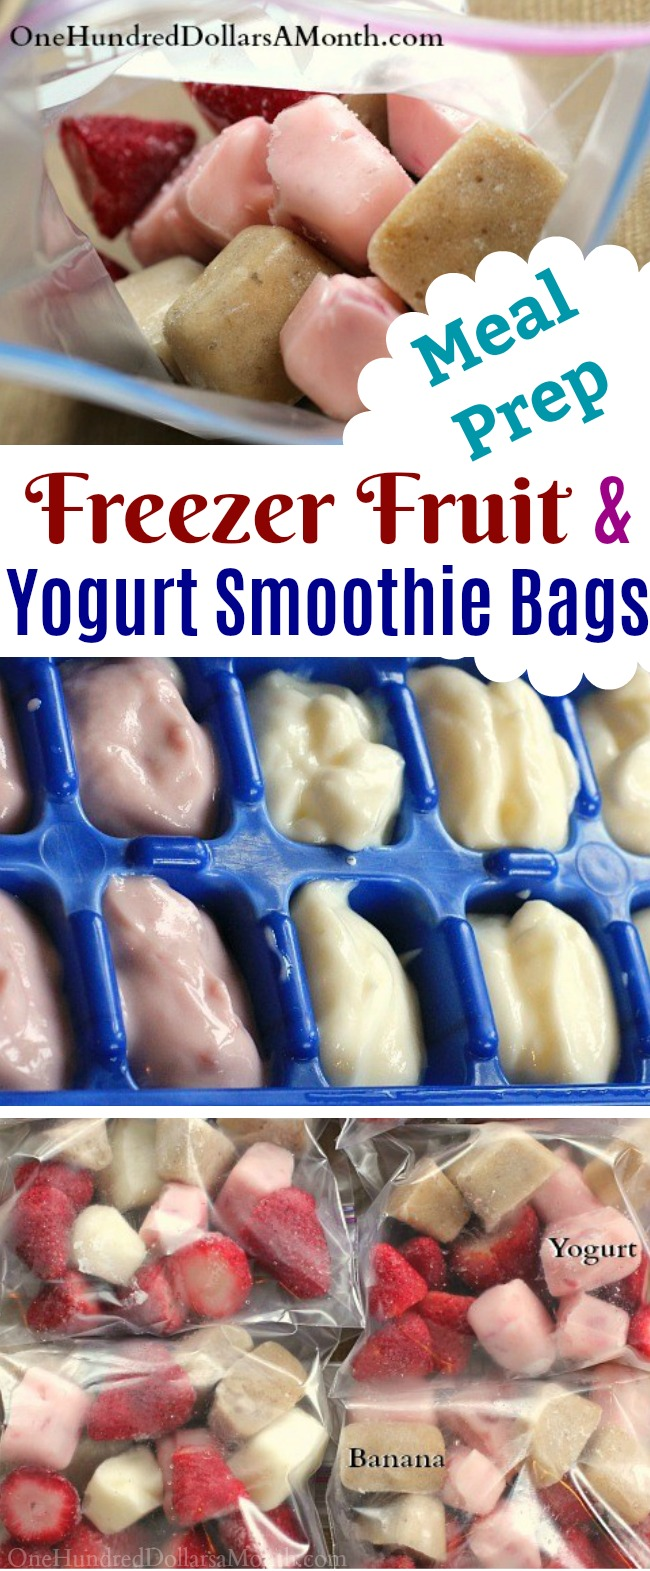 DIY Freezer Fruit and Yogurt Smoothie Bags